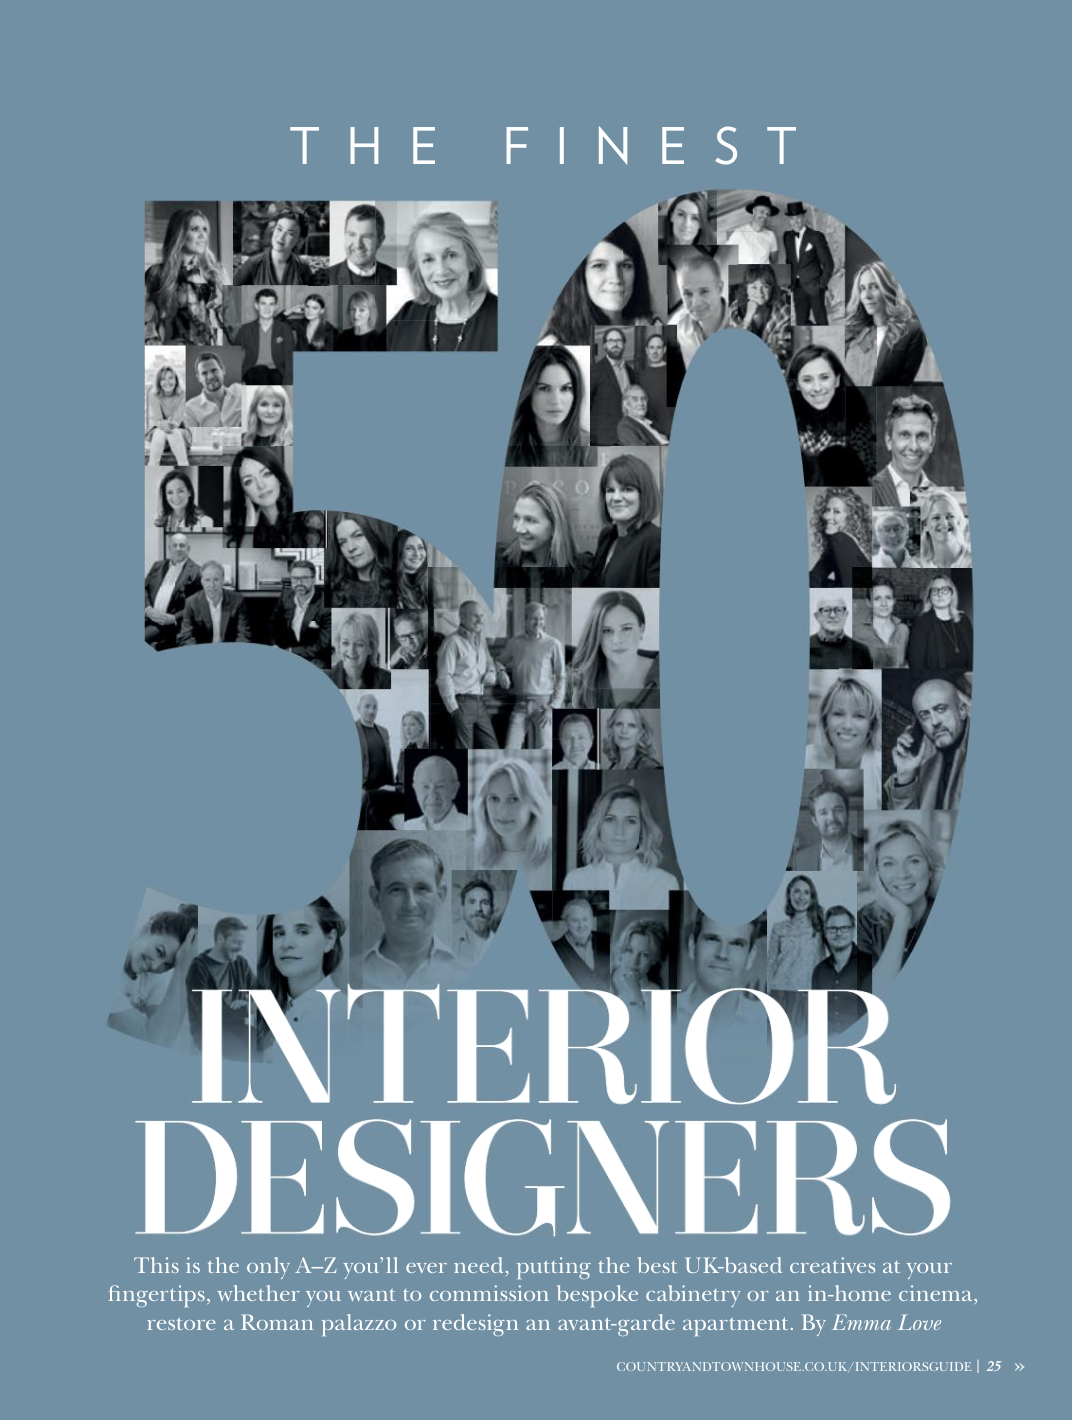 High end interior designer Jo Hamilton listed among the UK's finest a